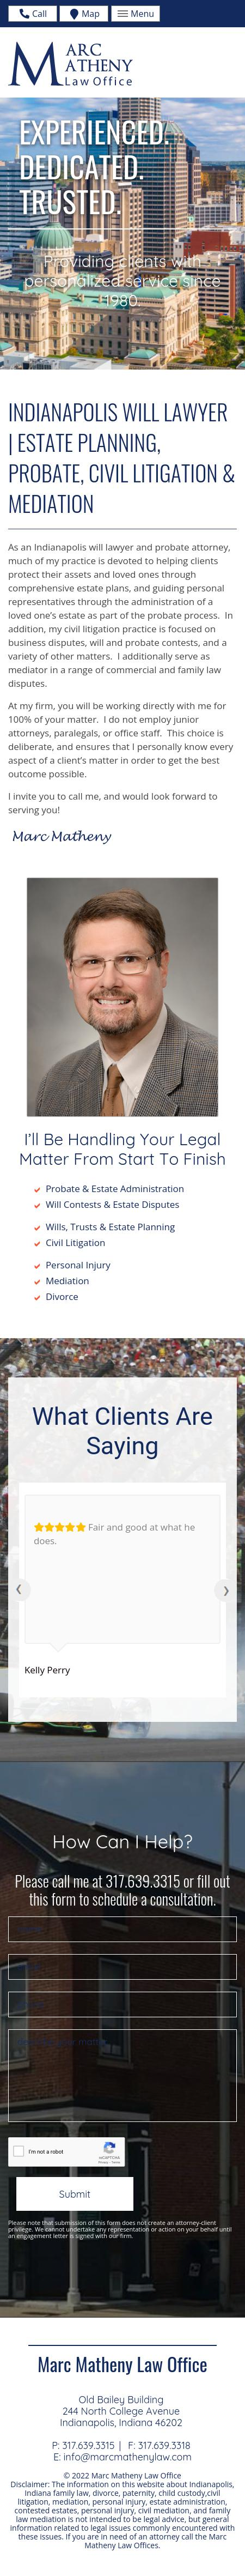 Marc Matheny Law Offices - Indianapolis IN Lawyers